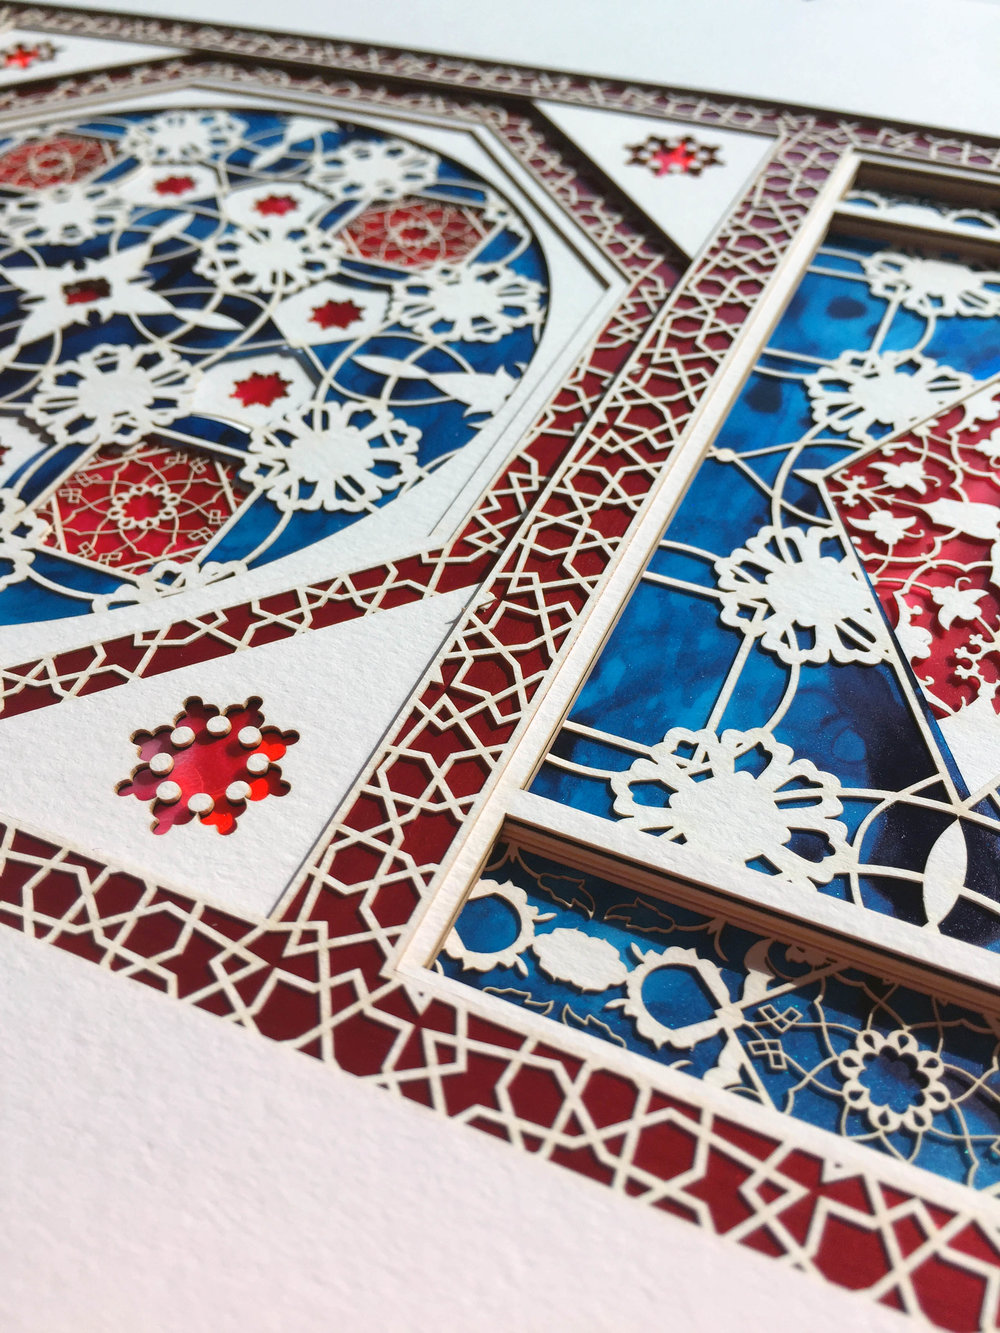 Detail Shot (Inlays in Red and Blue).jpg